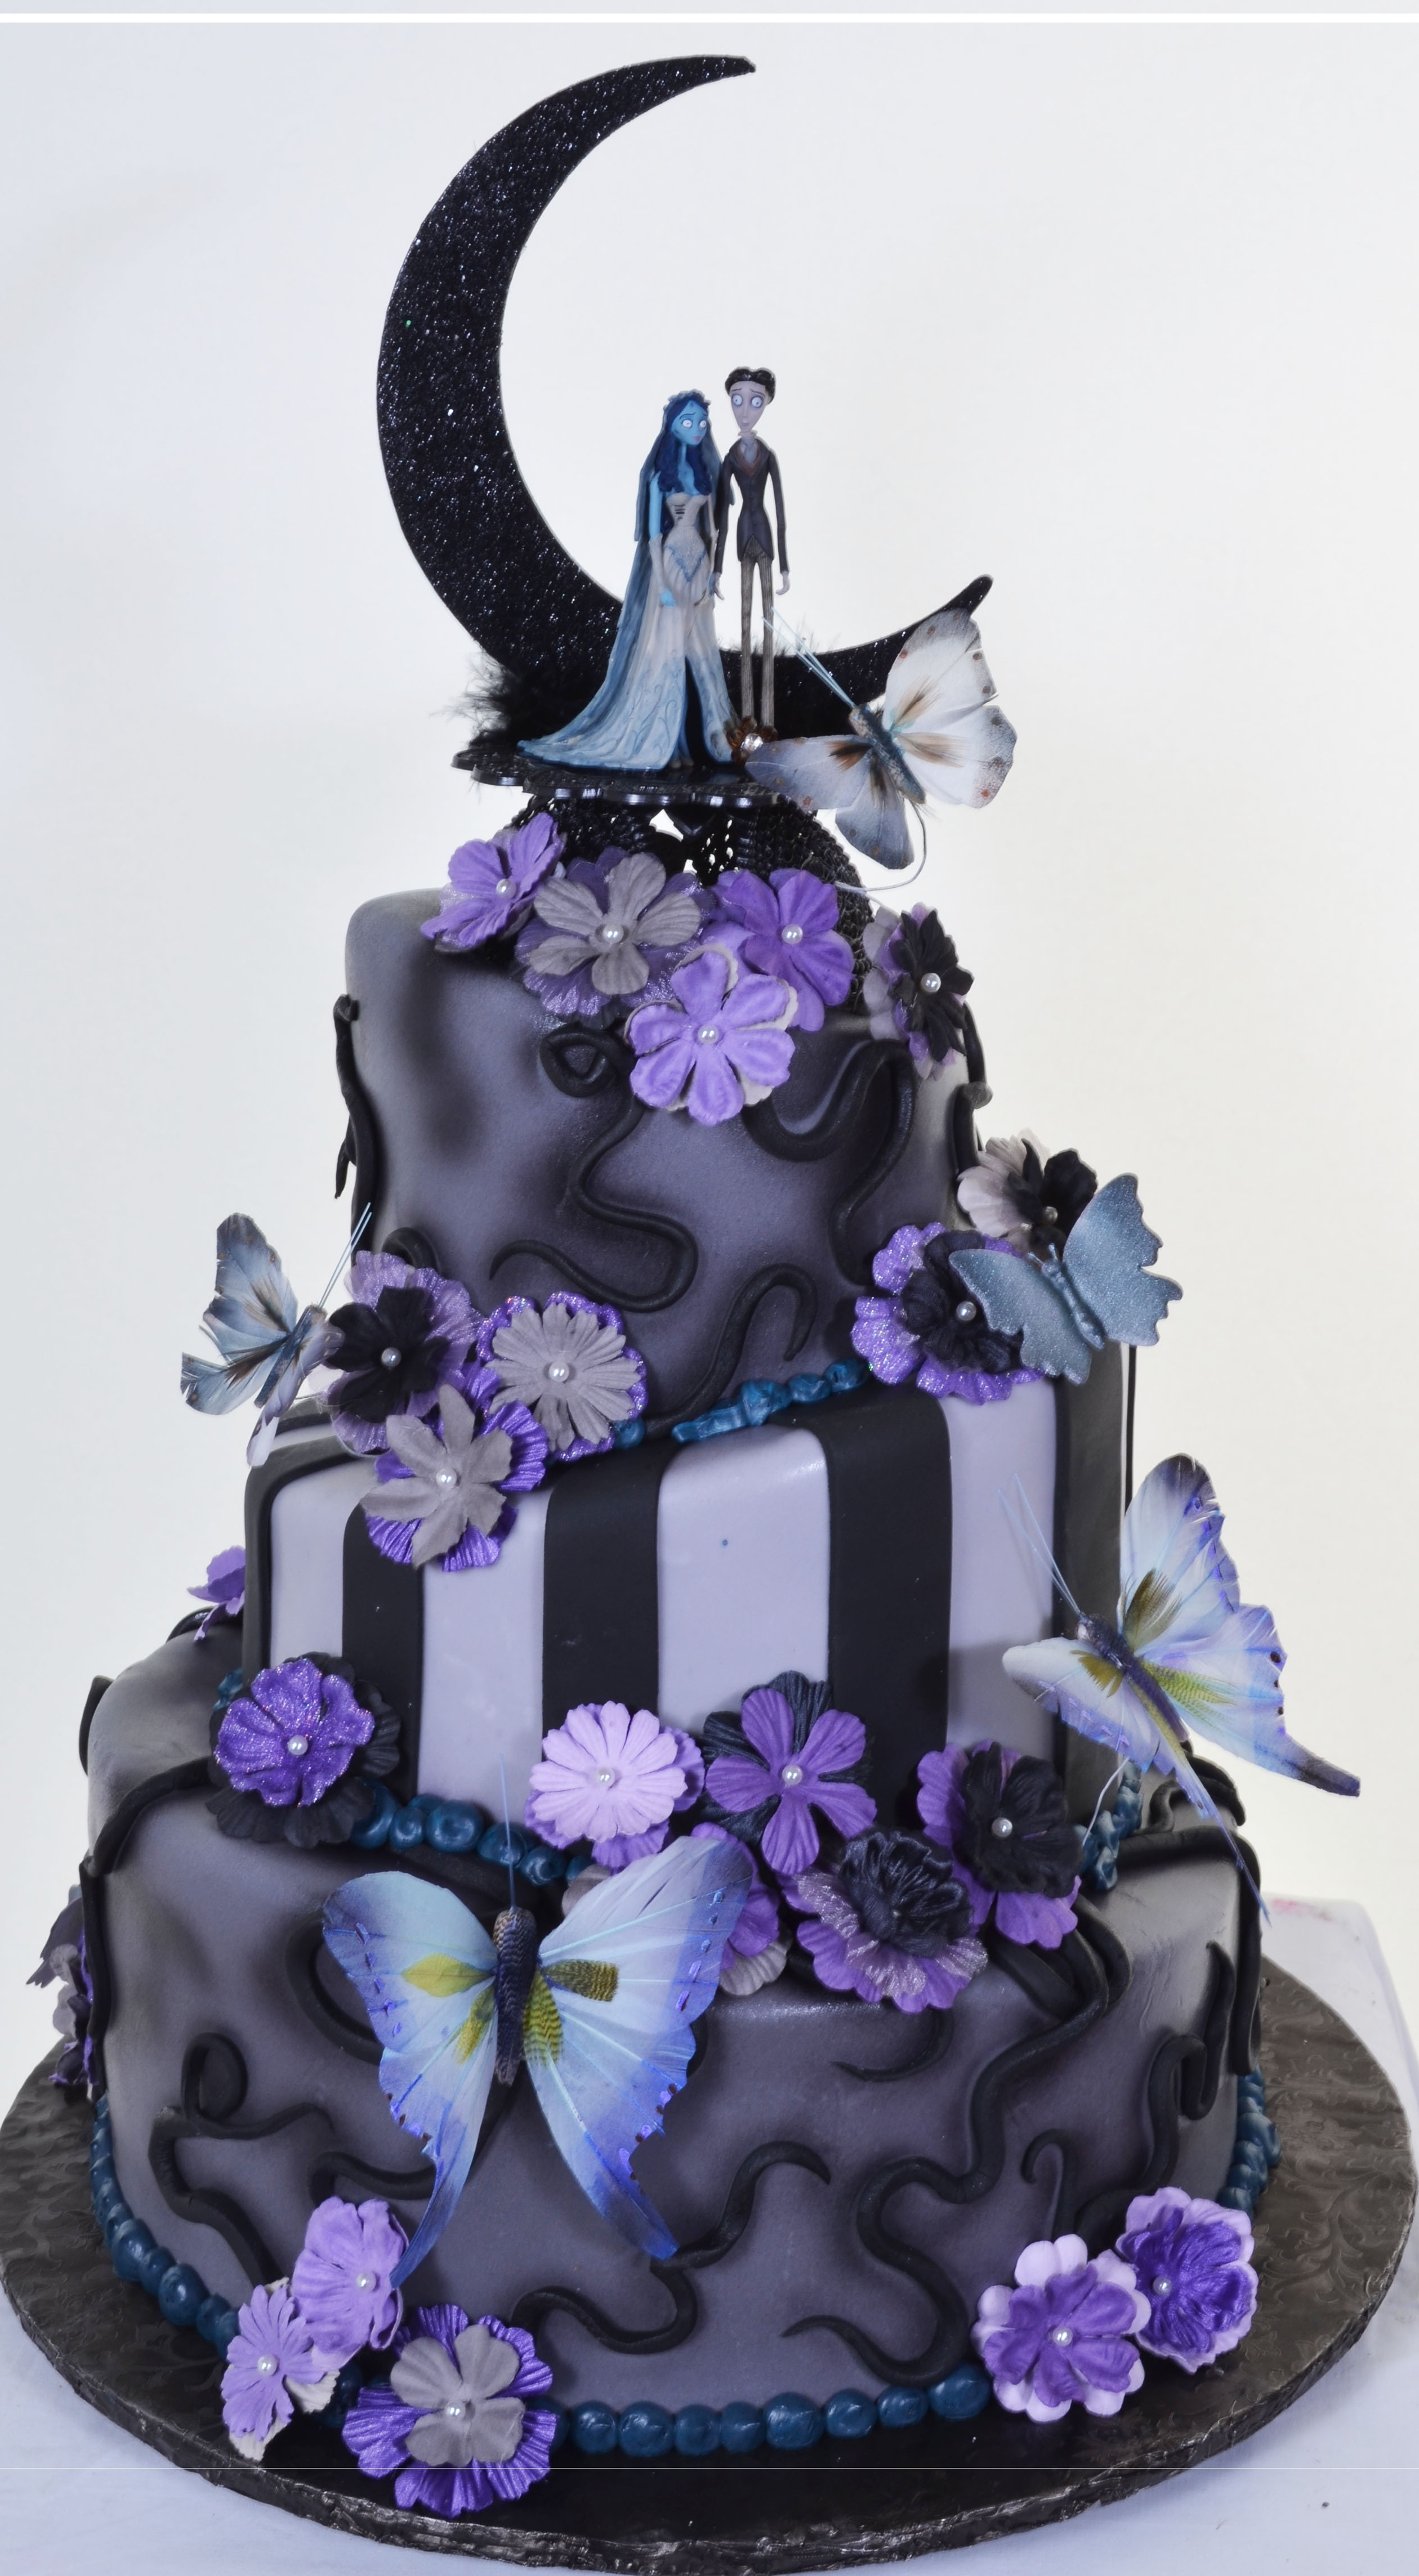 Pastry Palace Las Vegas - Wedding Cake #603 - Butterfly Moon